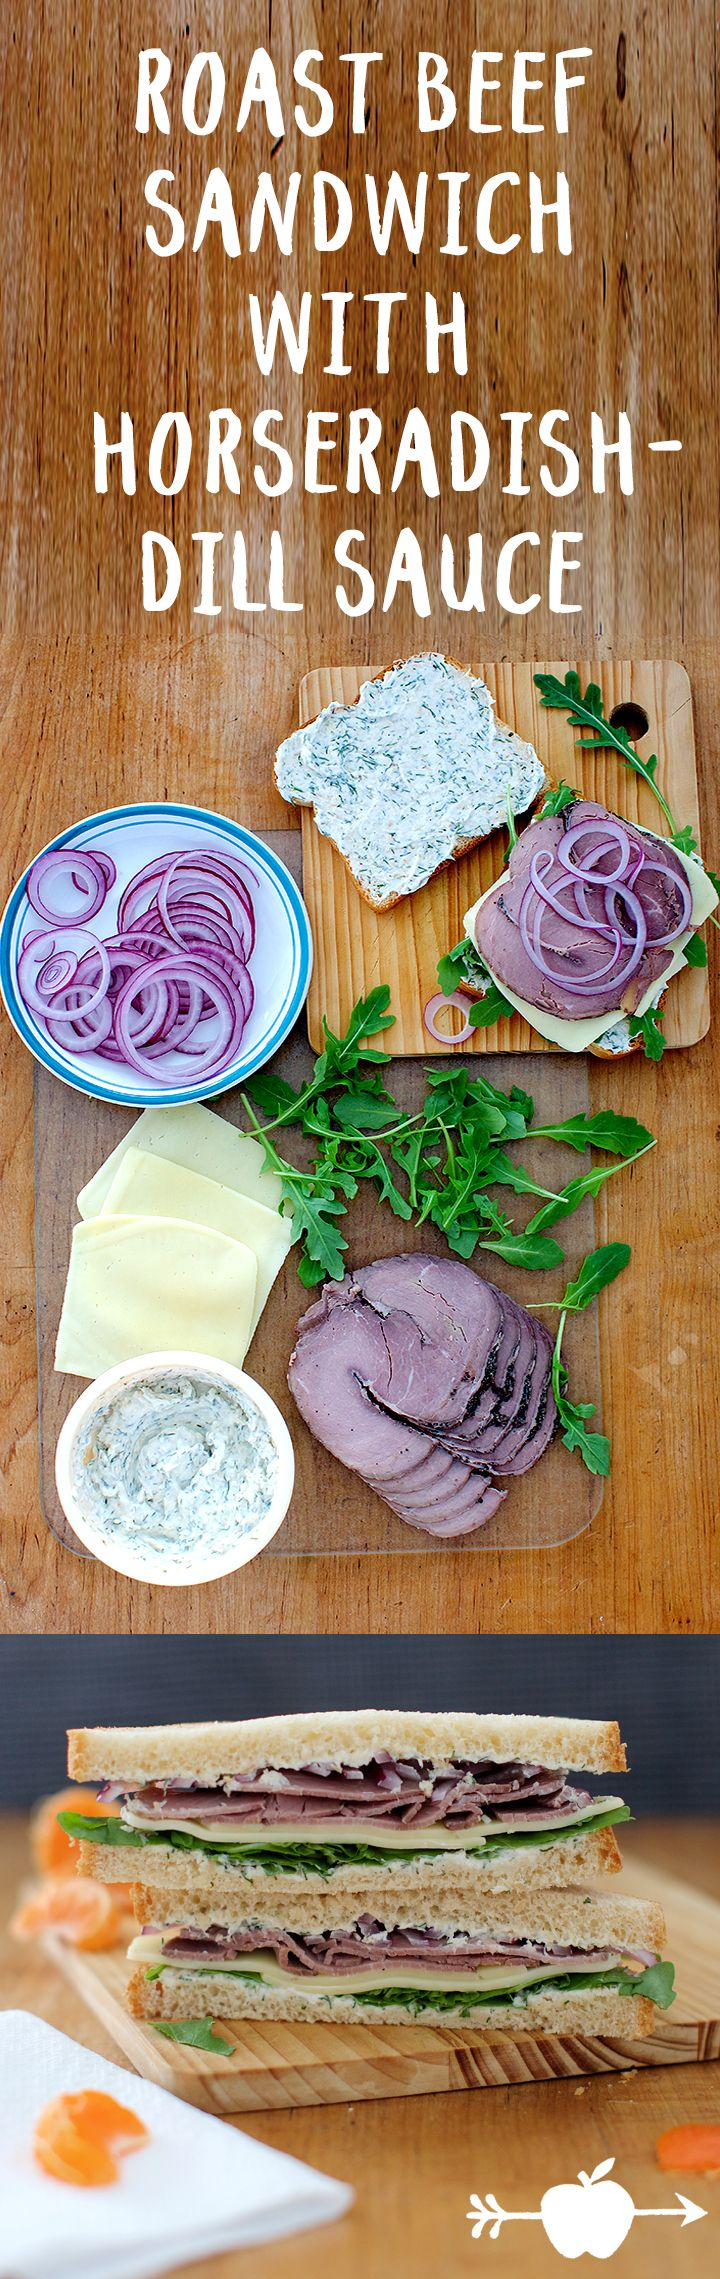 The flavors of the meat, cheese, onions and arugula meld beautifully with the creamy sauce.